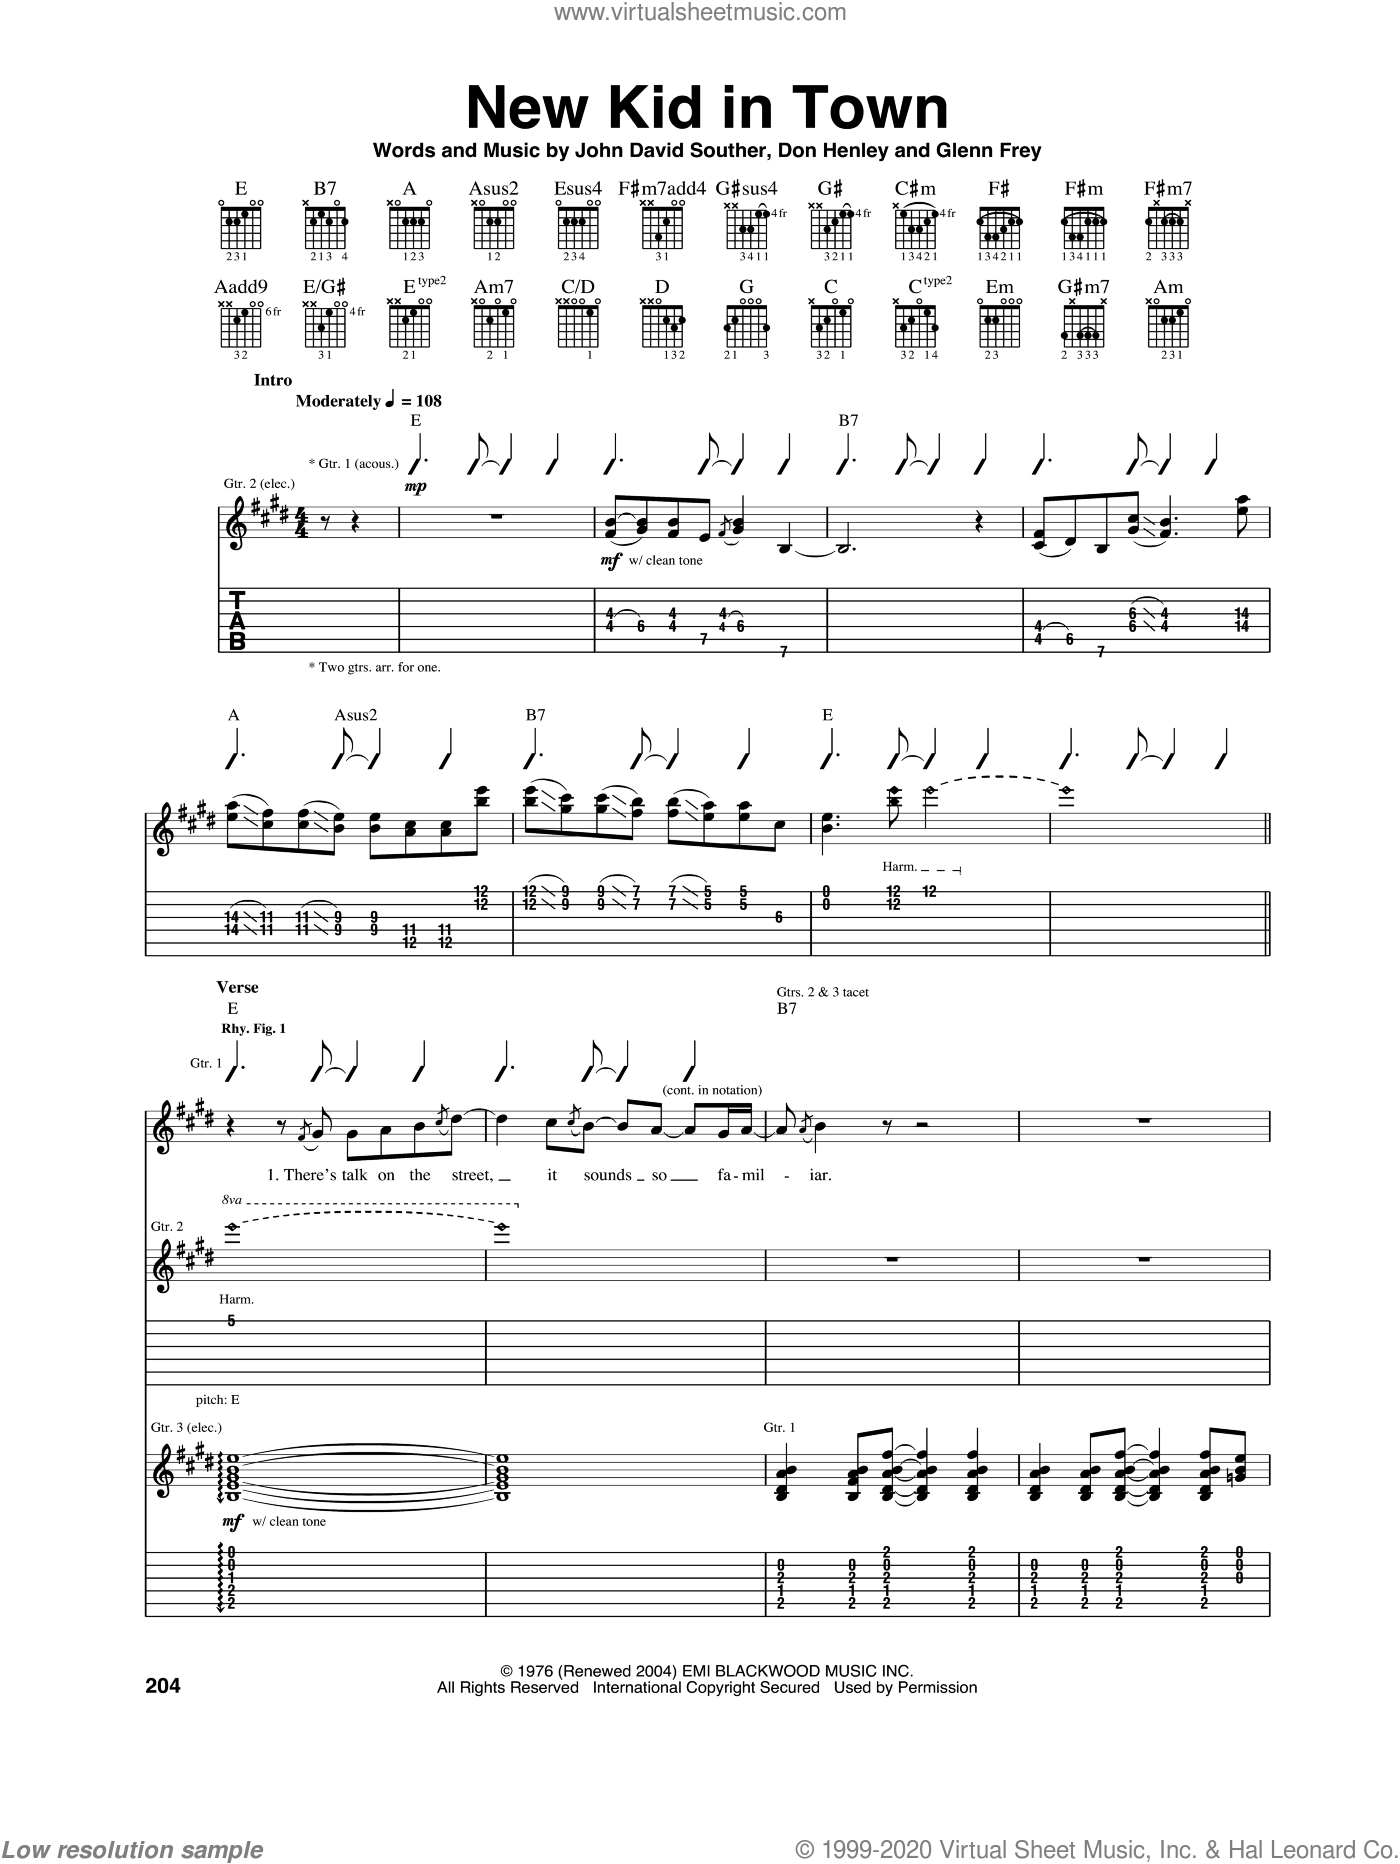 New Kid In Town sheet music for guitar solo (tablature) by John David Souther